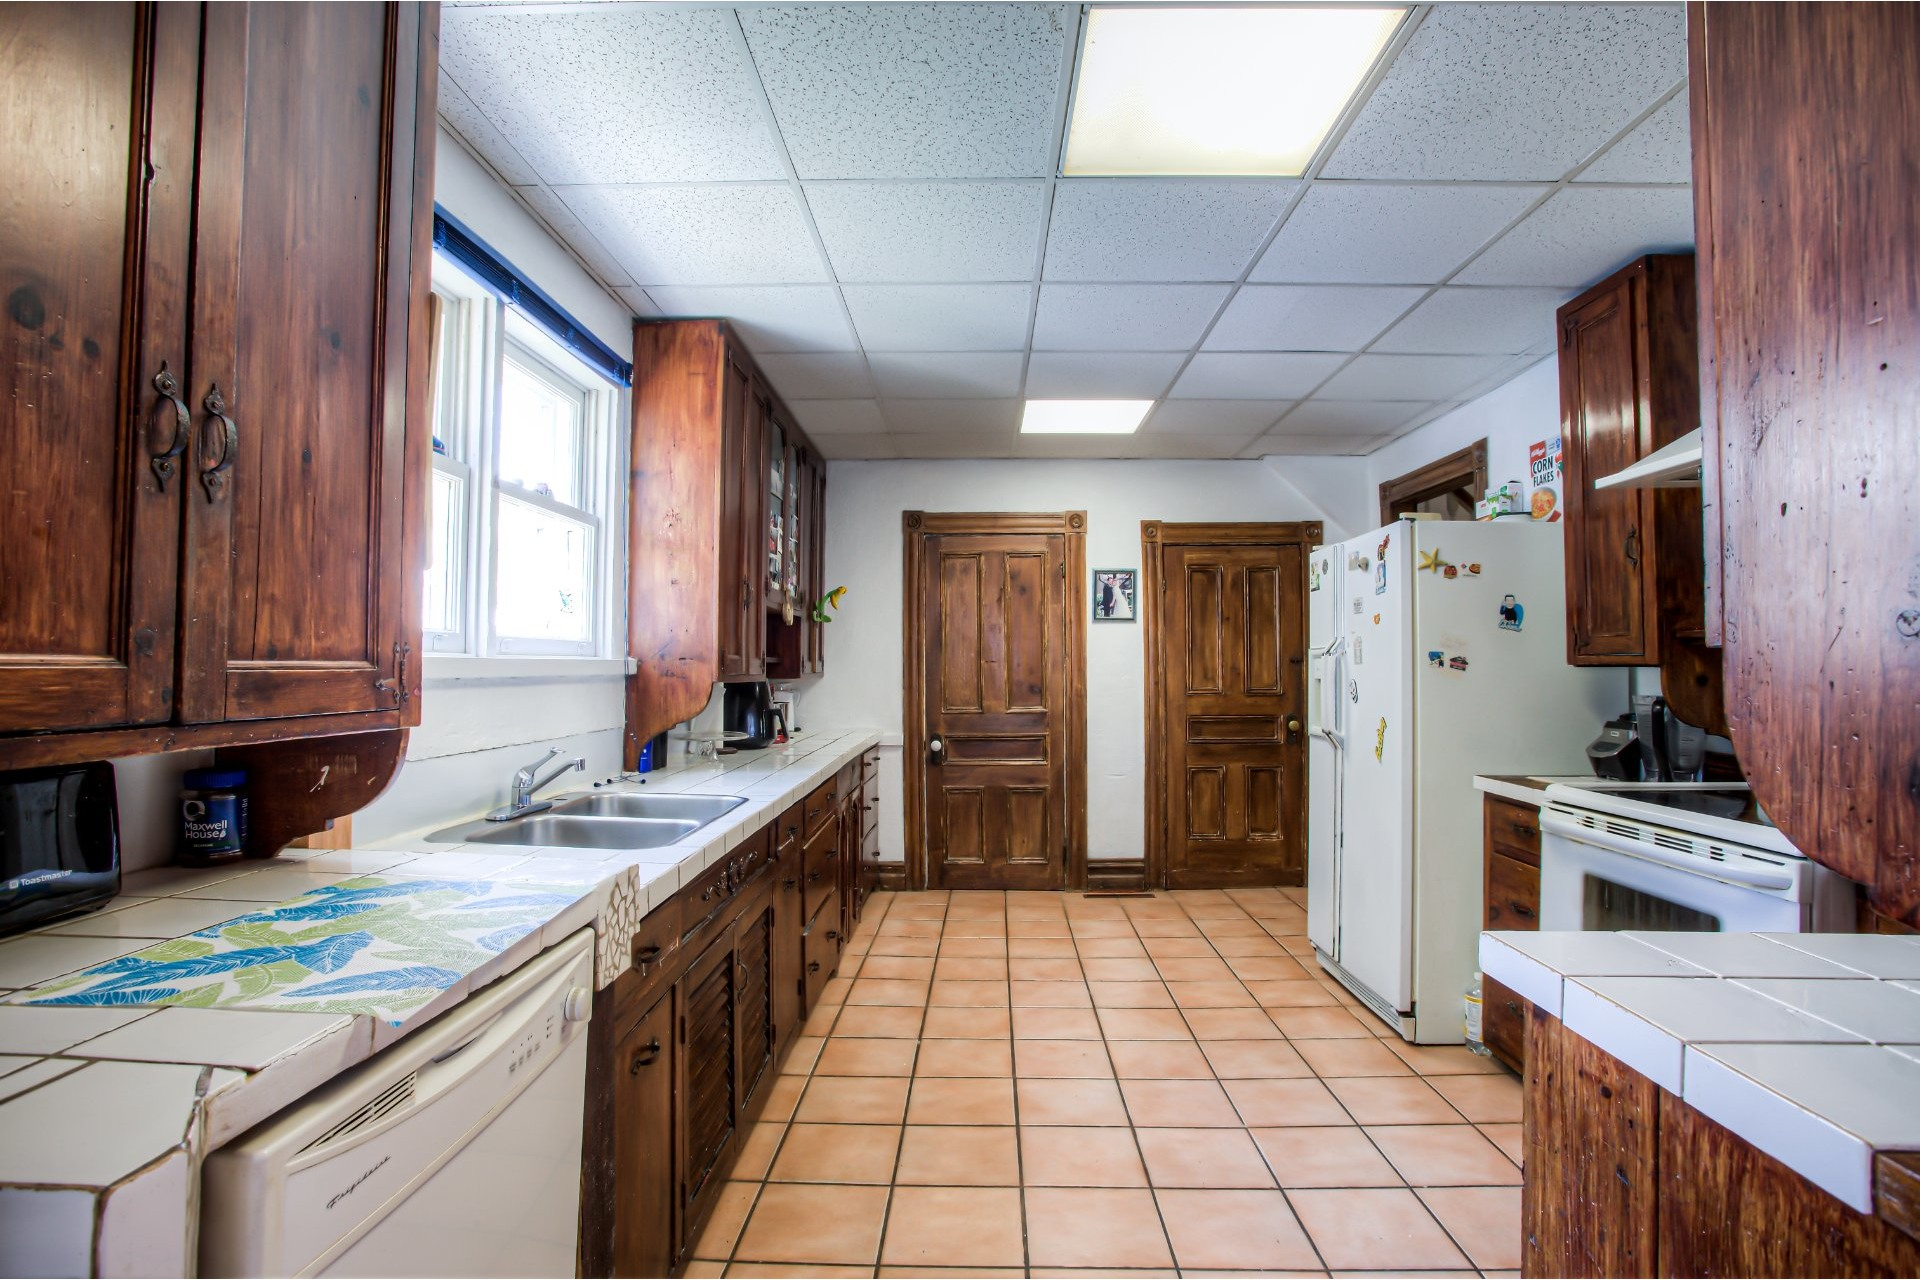 image 5 - House For sale Dorval - 10 rooms